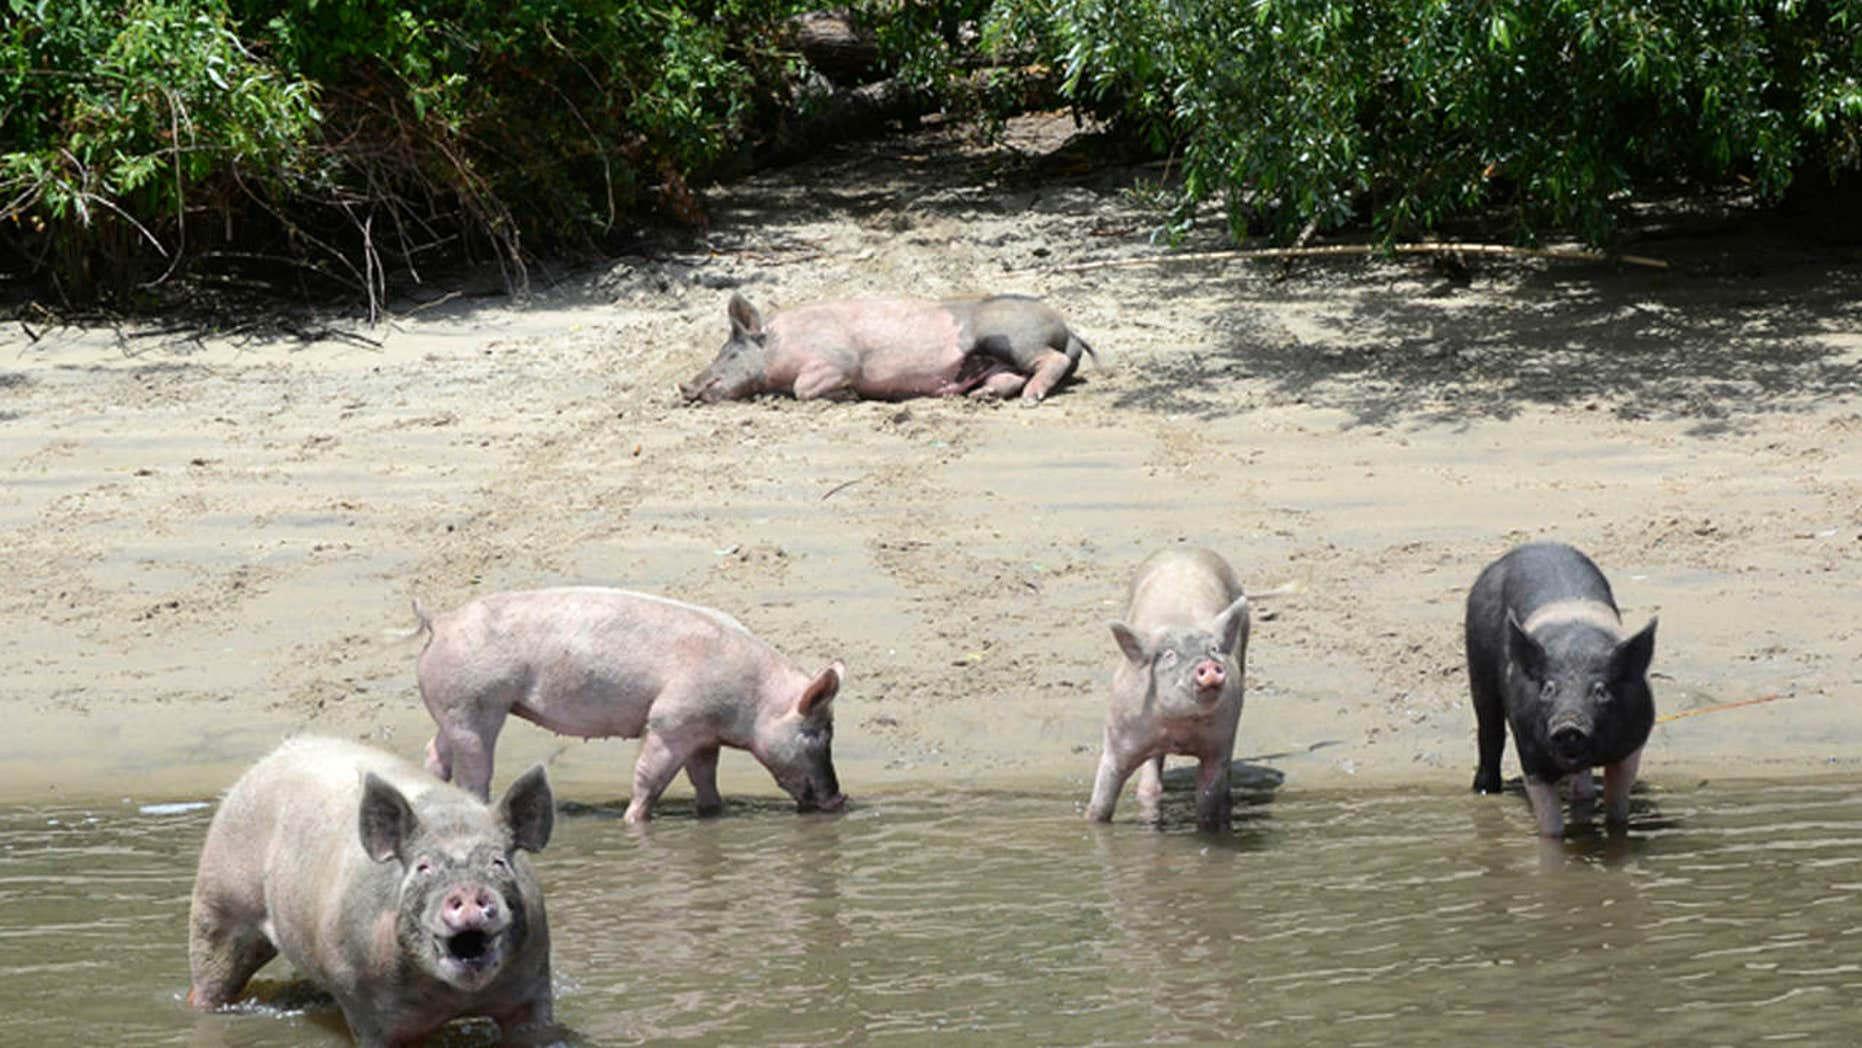 This Tuesday, June 13, 2017, photo provided by the Farm Sanctuary shows several pigs that were left four years ago on a small island within the California Delta that have become the center of residents' debate after an animal-rights group took them off the island.